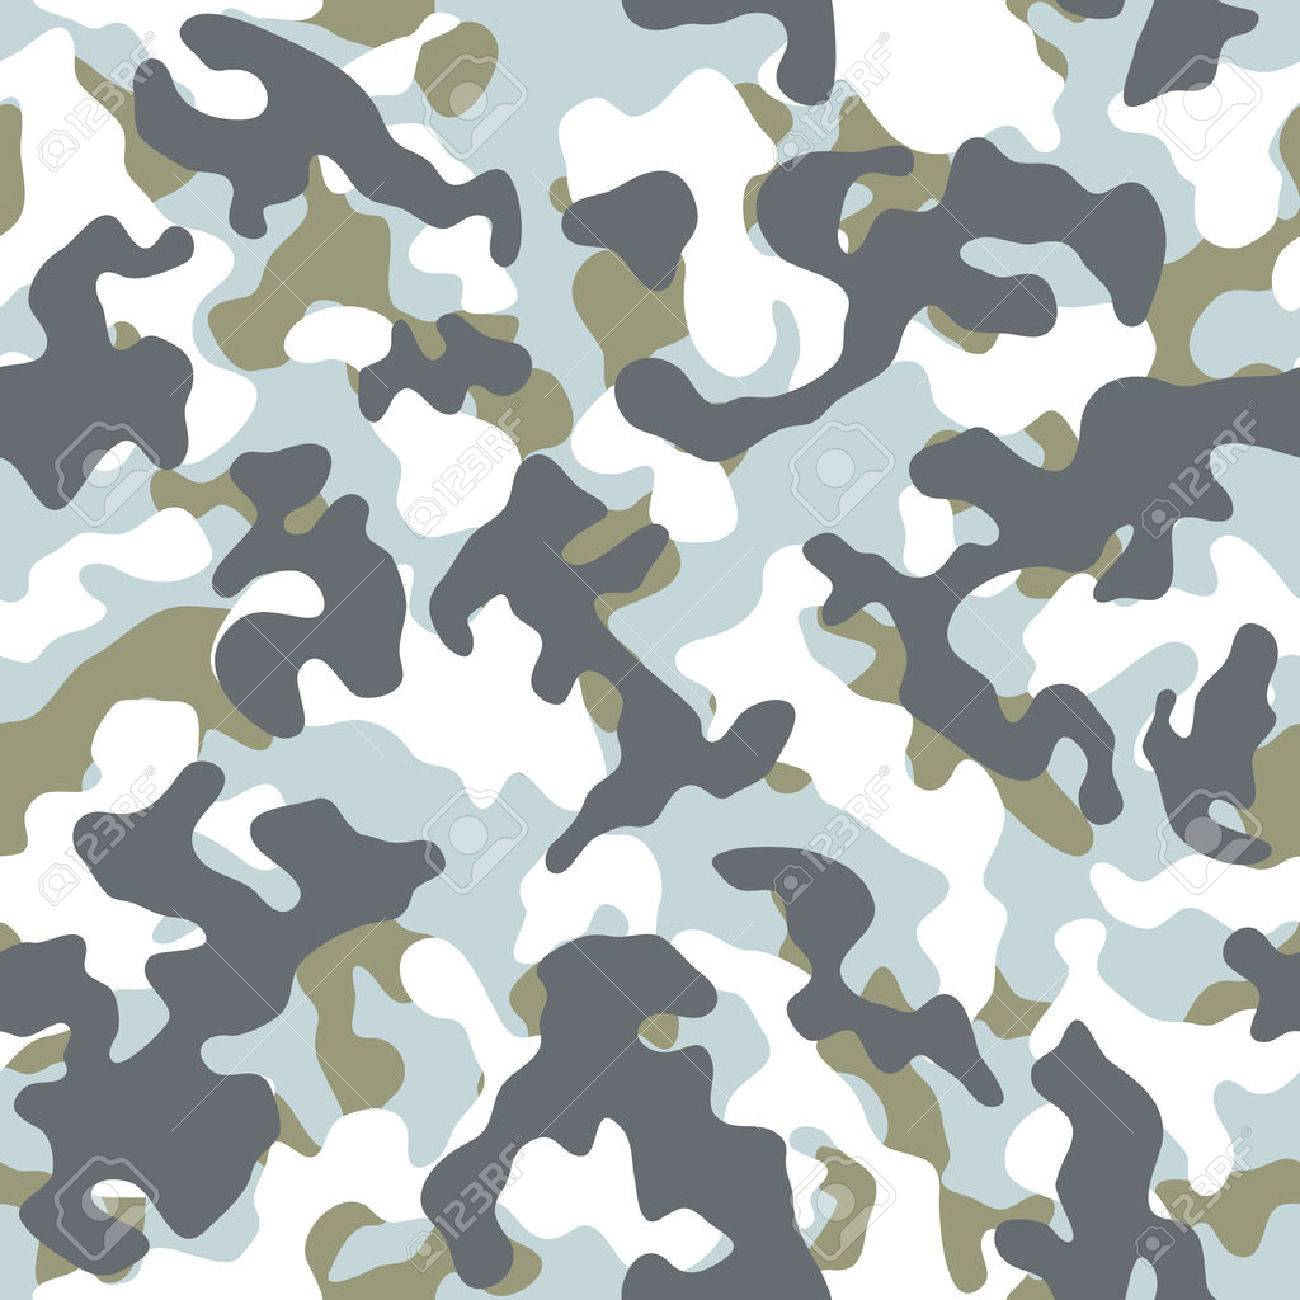 Vector Illustration Of Snow Winter Camouflage Seamless Pattern Stock